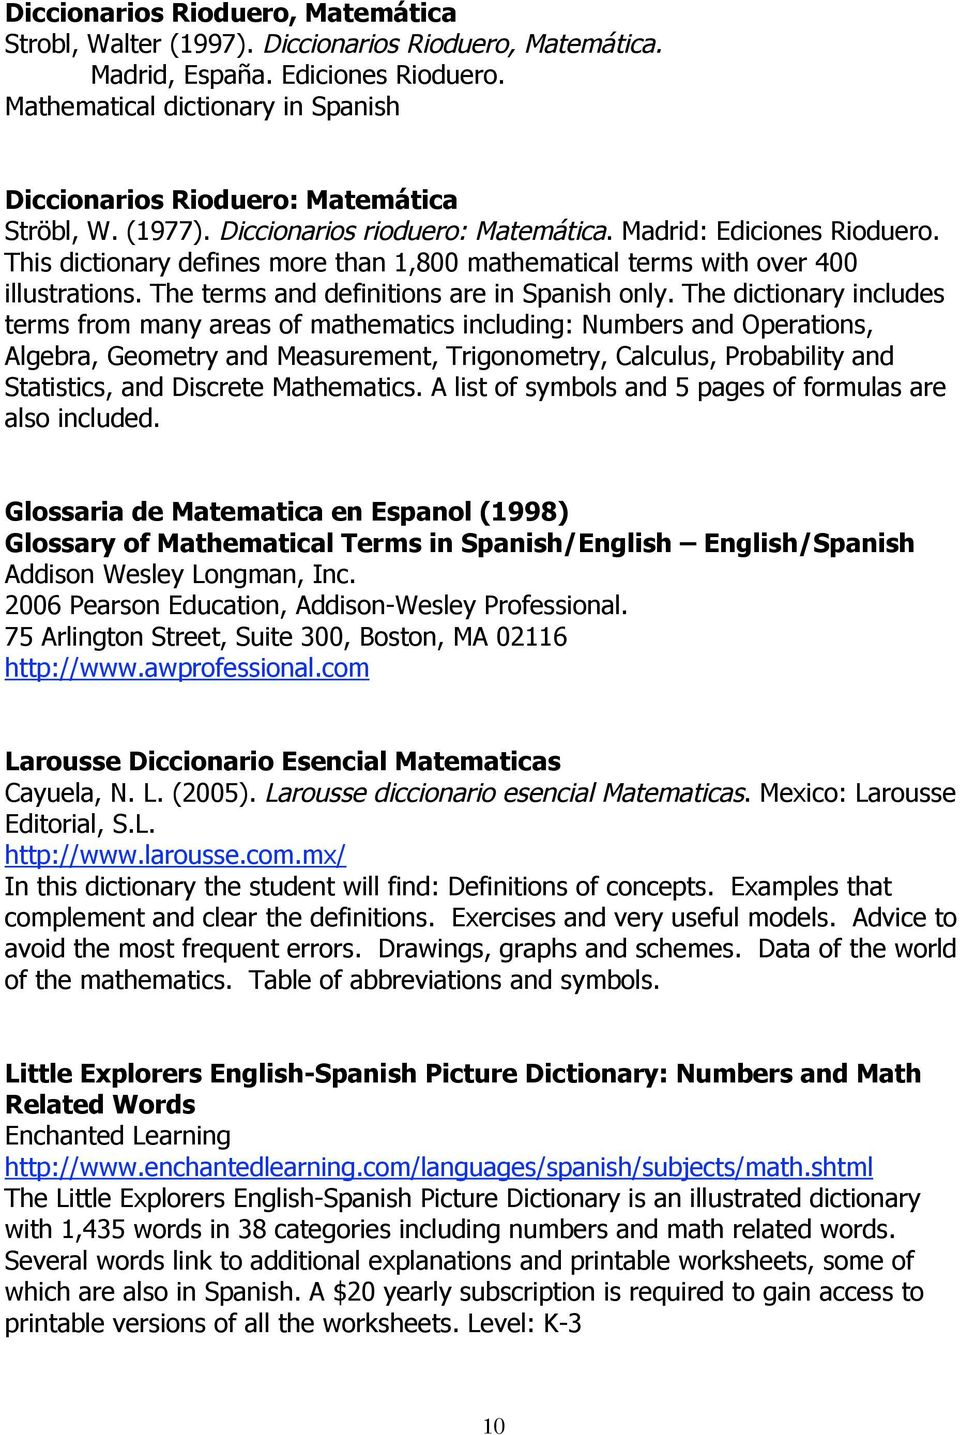 This dictionary defines more than 1,800 mathematical terms with over 400 illustrations. The terms and definitions are in Spanish only.